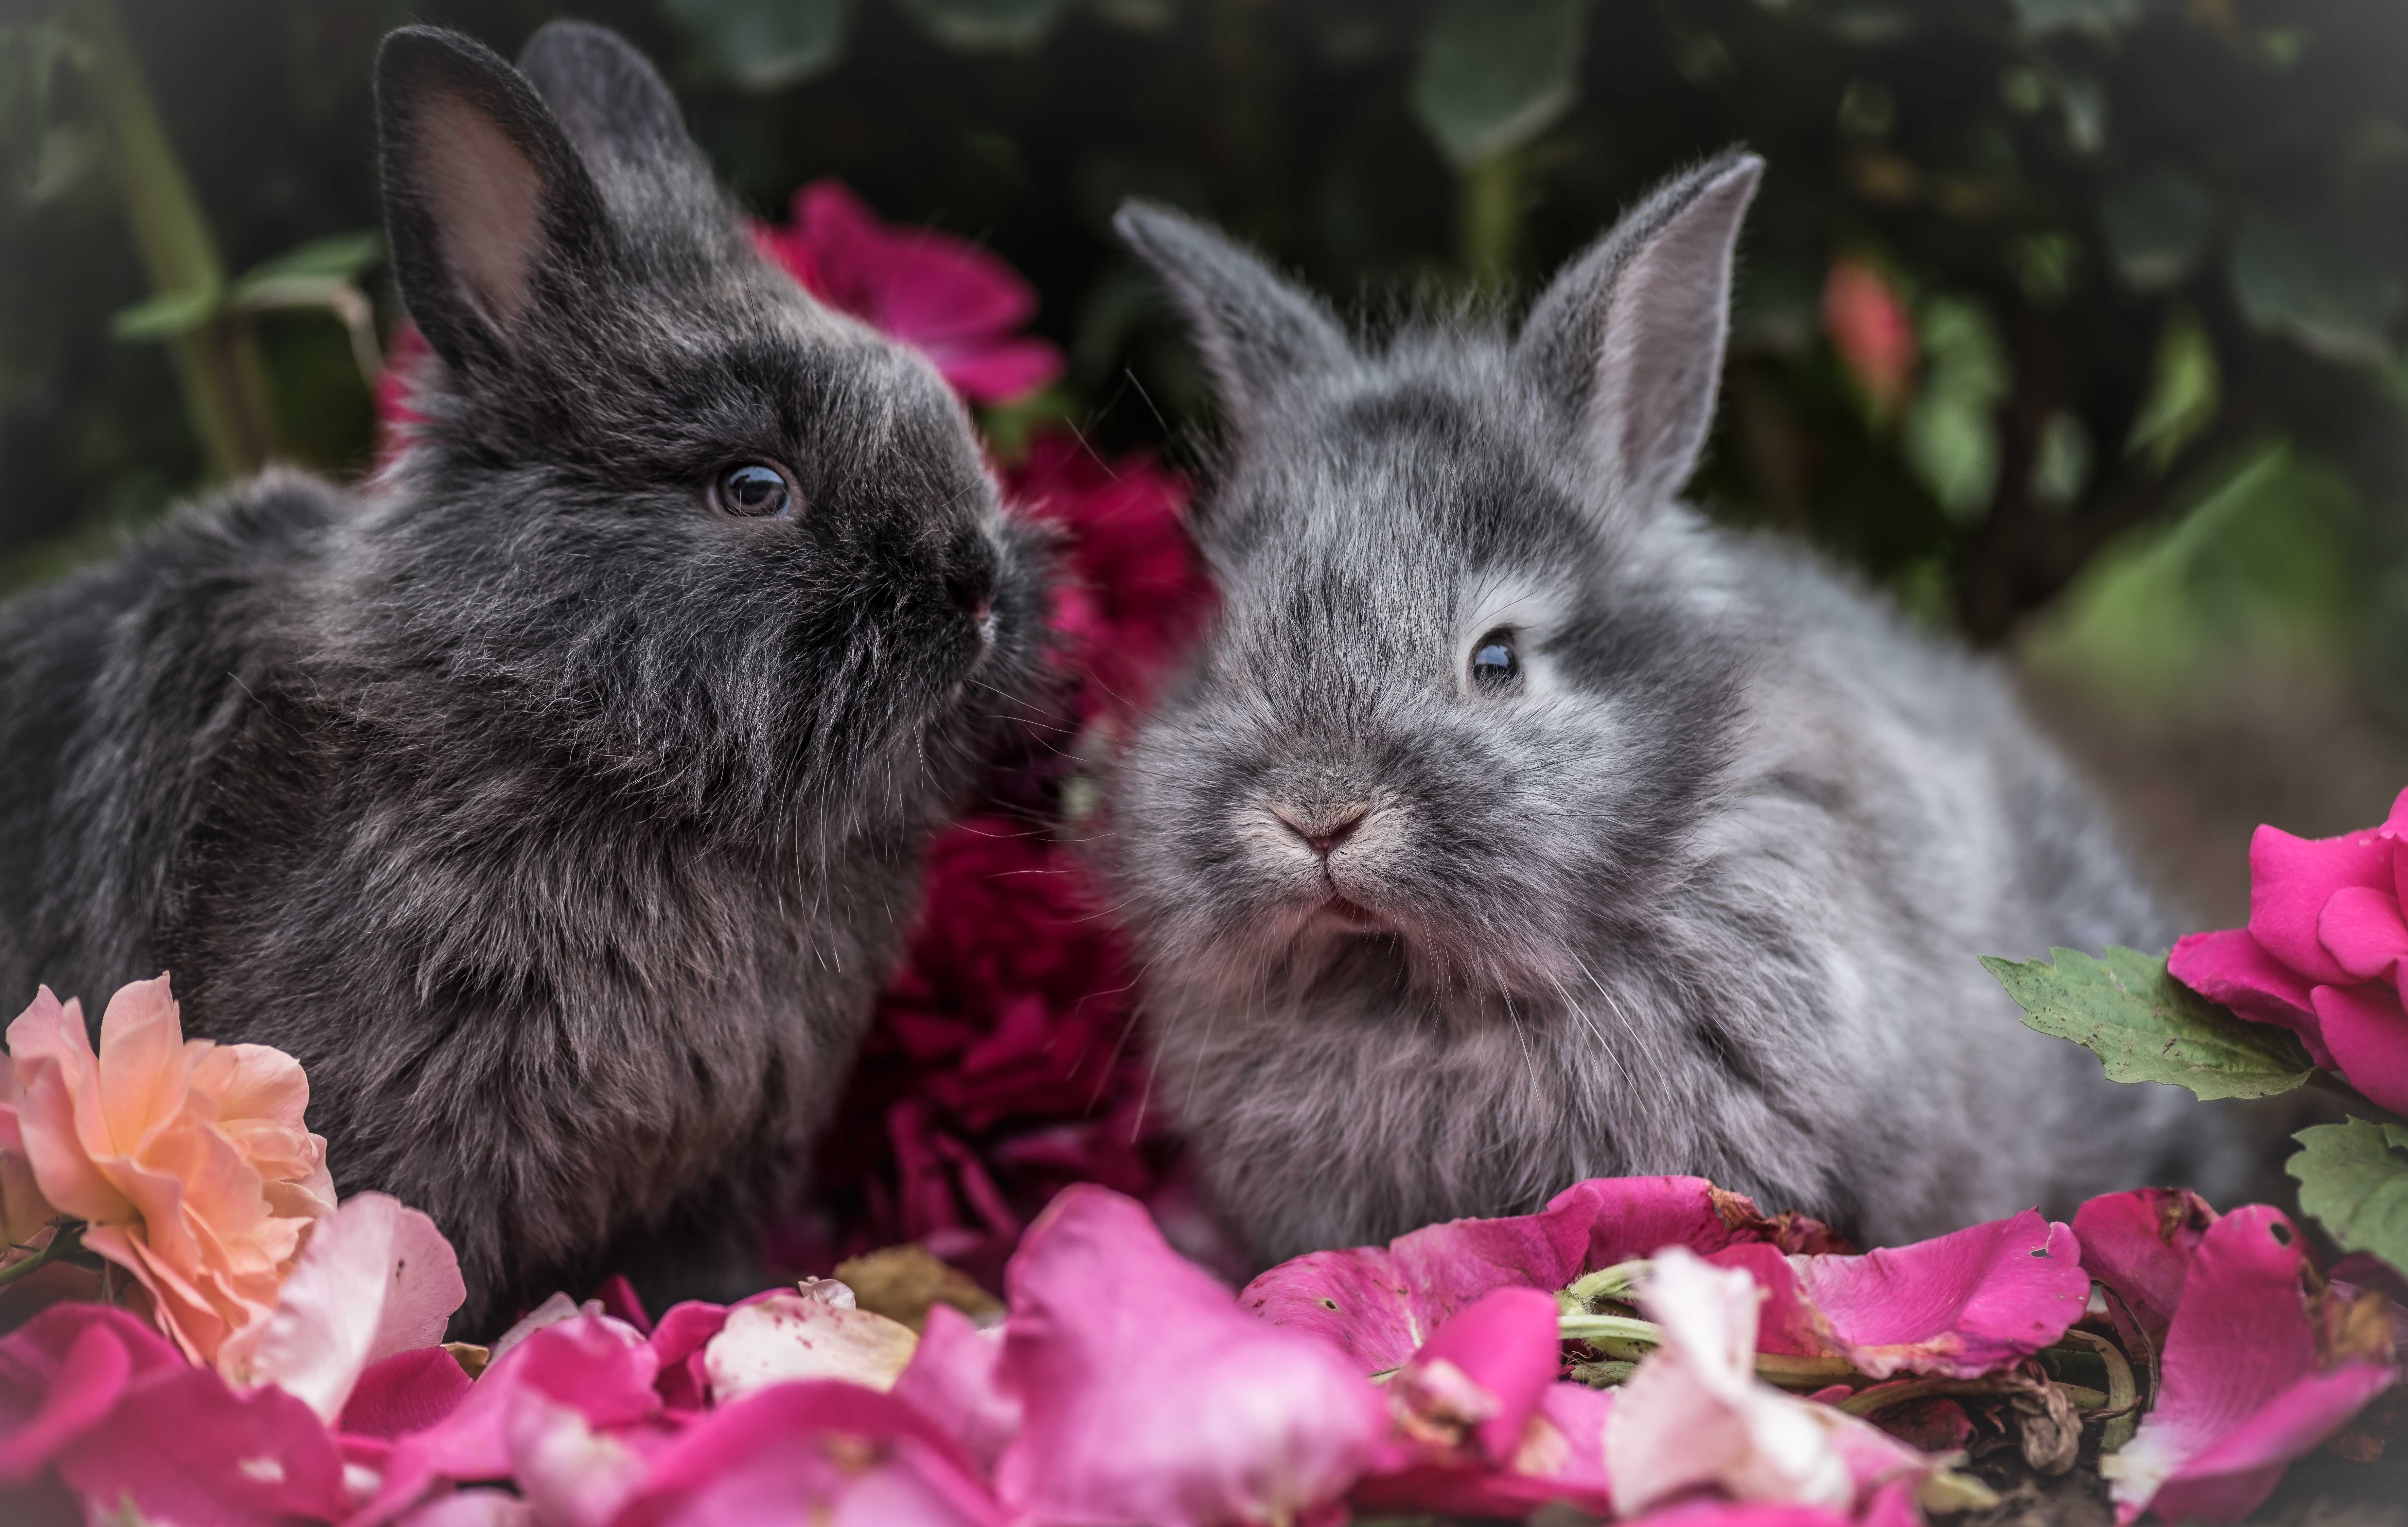 147702 download wallpaper Animals, Flowers, Rabbits, Fluffy, Grey, Rabbit screensavers and pictures for free